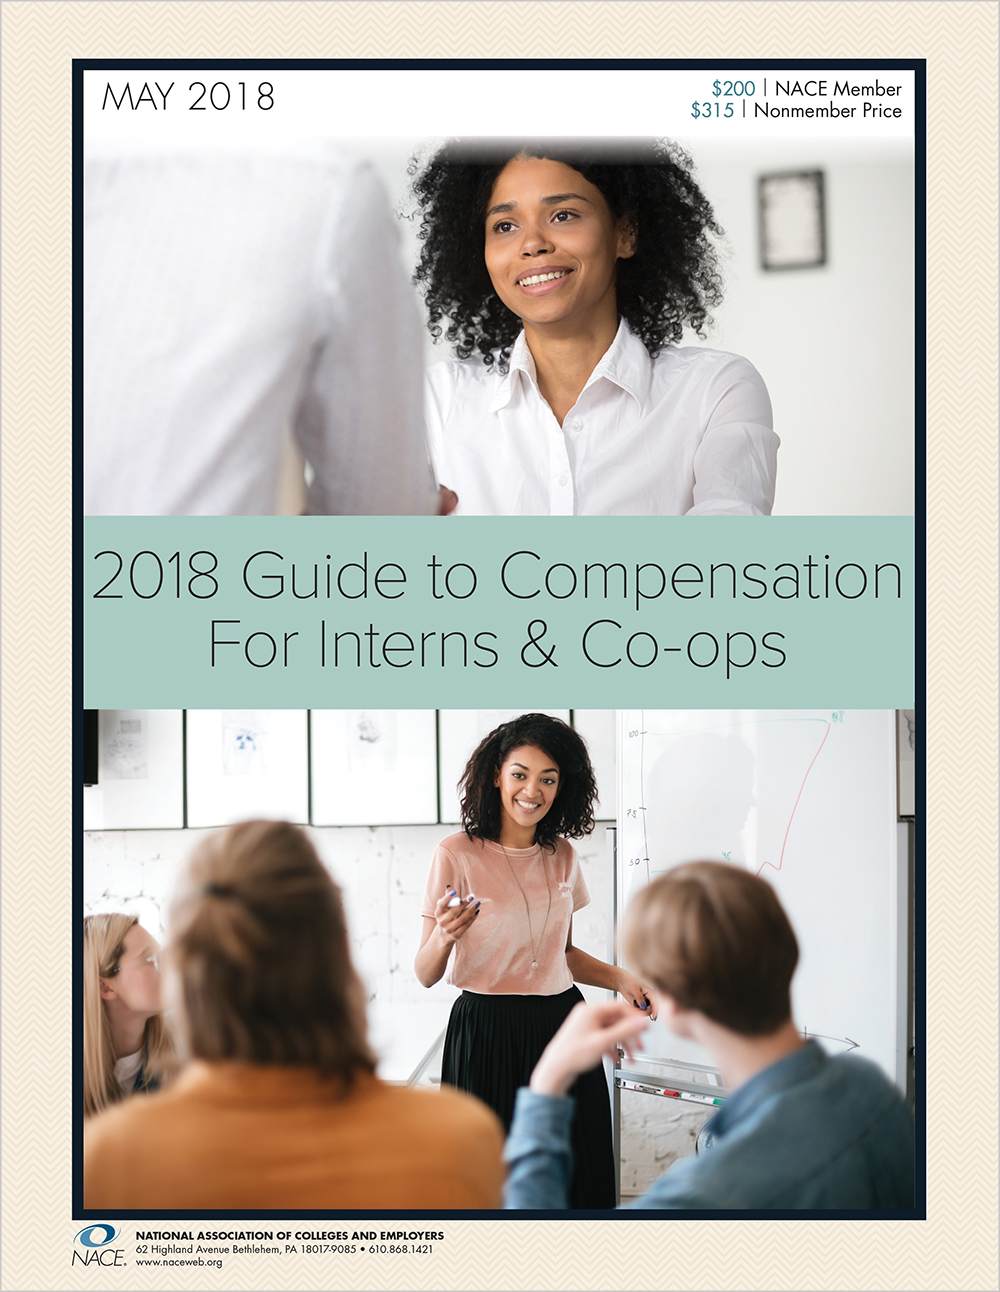 2018 NACE Guide to Compensation for Interns & Co-ops